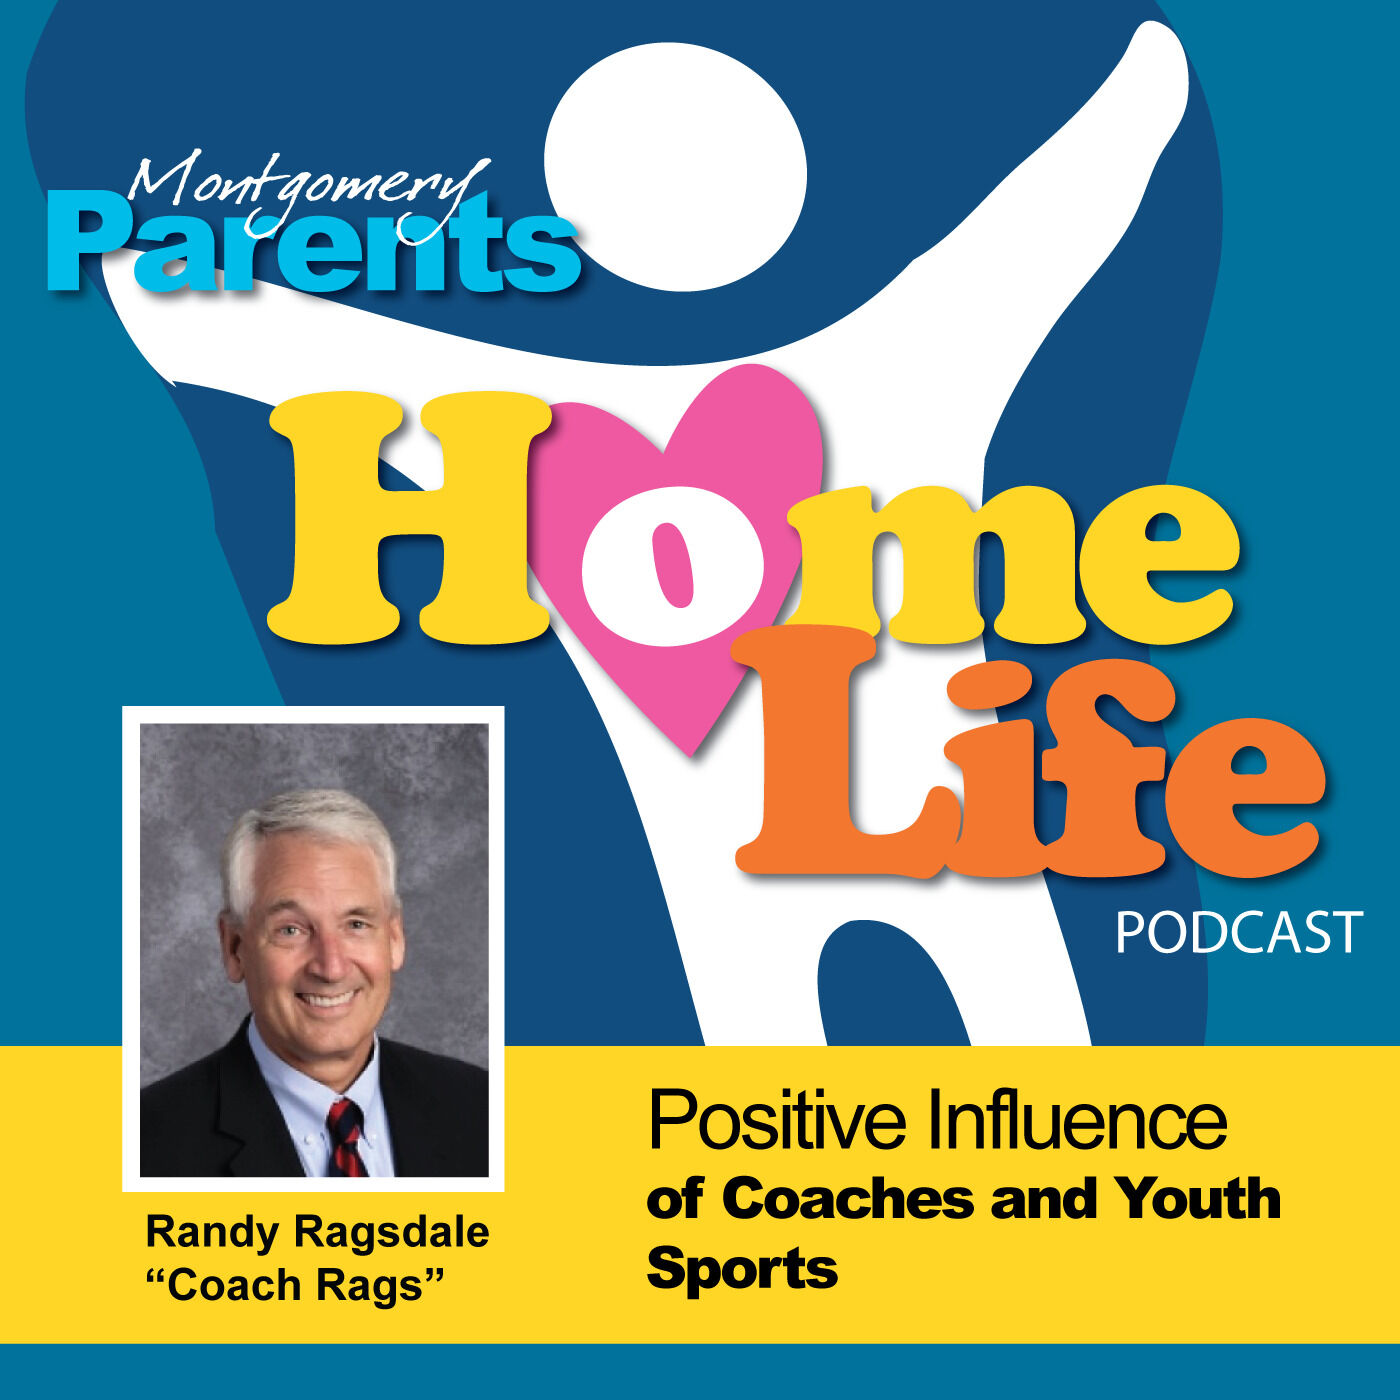 Coach Randy Ragsdale Discusses the Positive Influence of Coaches and Youth Sports